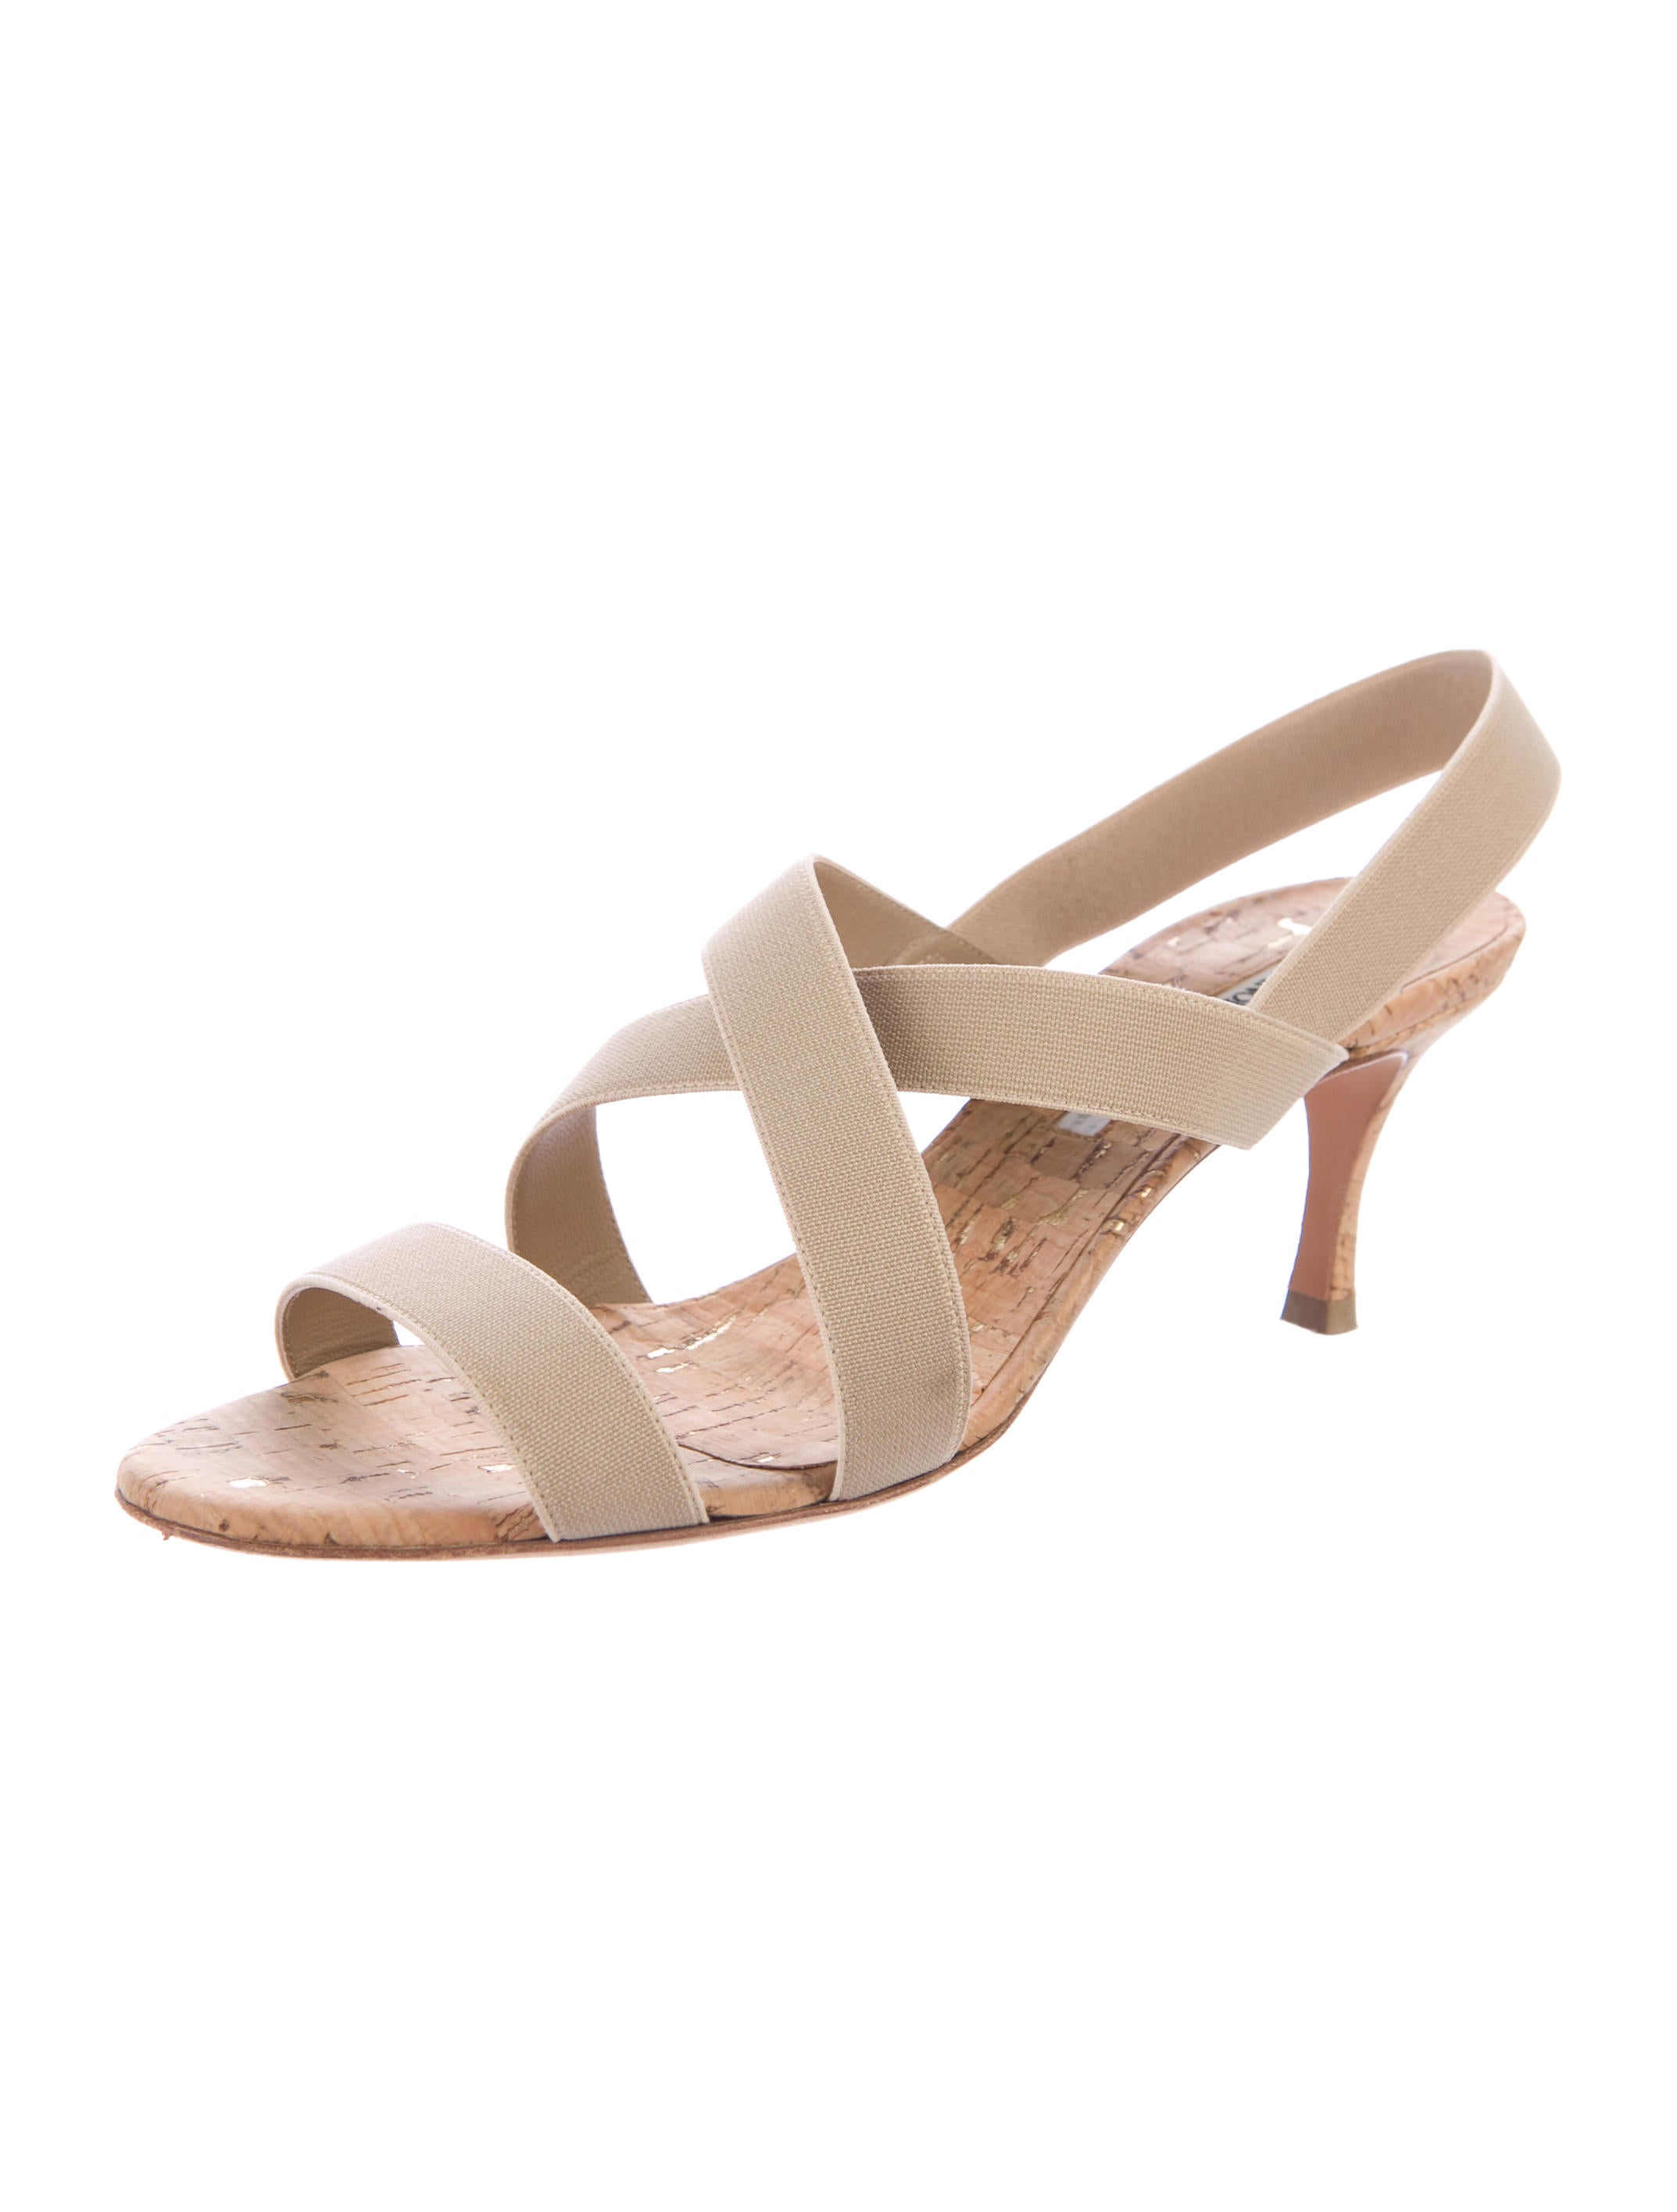 Manolo blahnik slingback crossover sandals shoes for Shoes by manolo blahnik